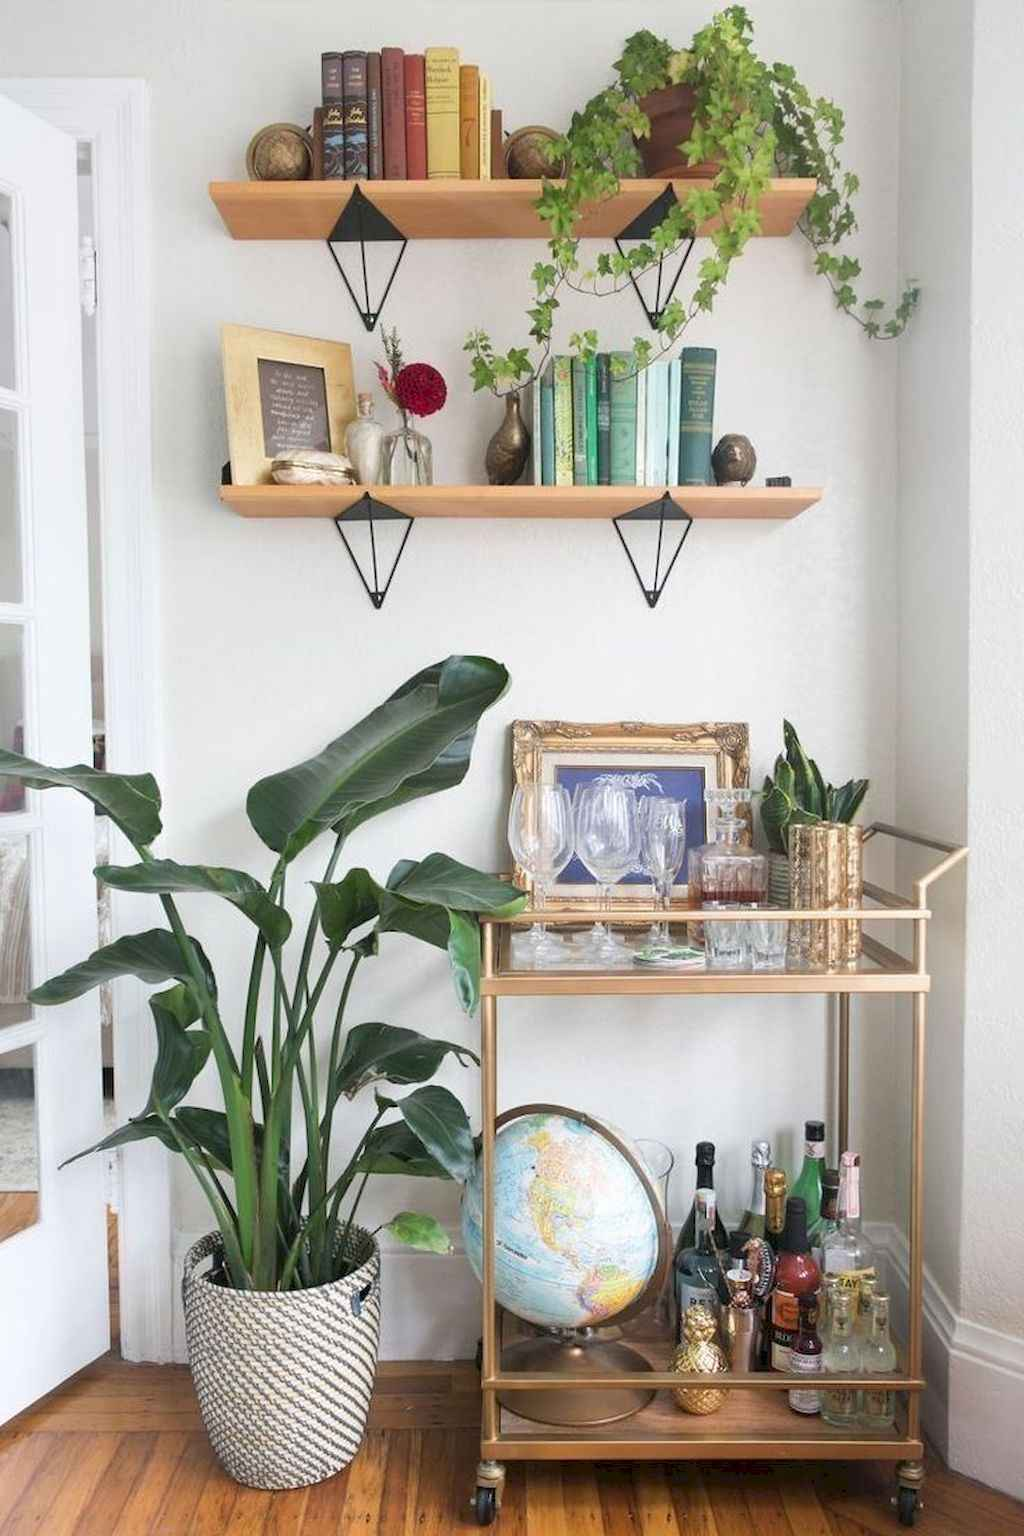 Beautiful First Home Decorating Ideas On A Budget: 13 Cheap And Easy First Apartment Decorating Ideas On A Budget